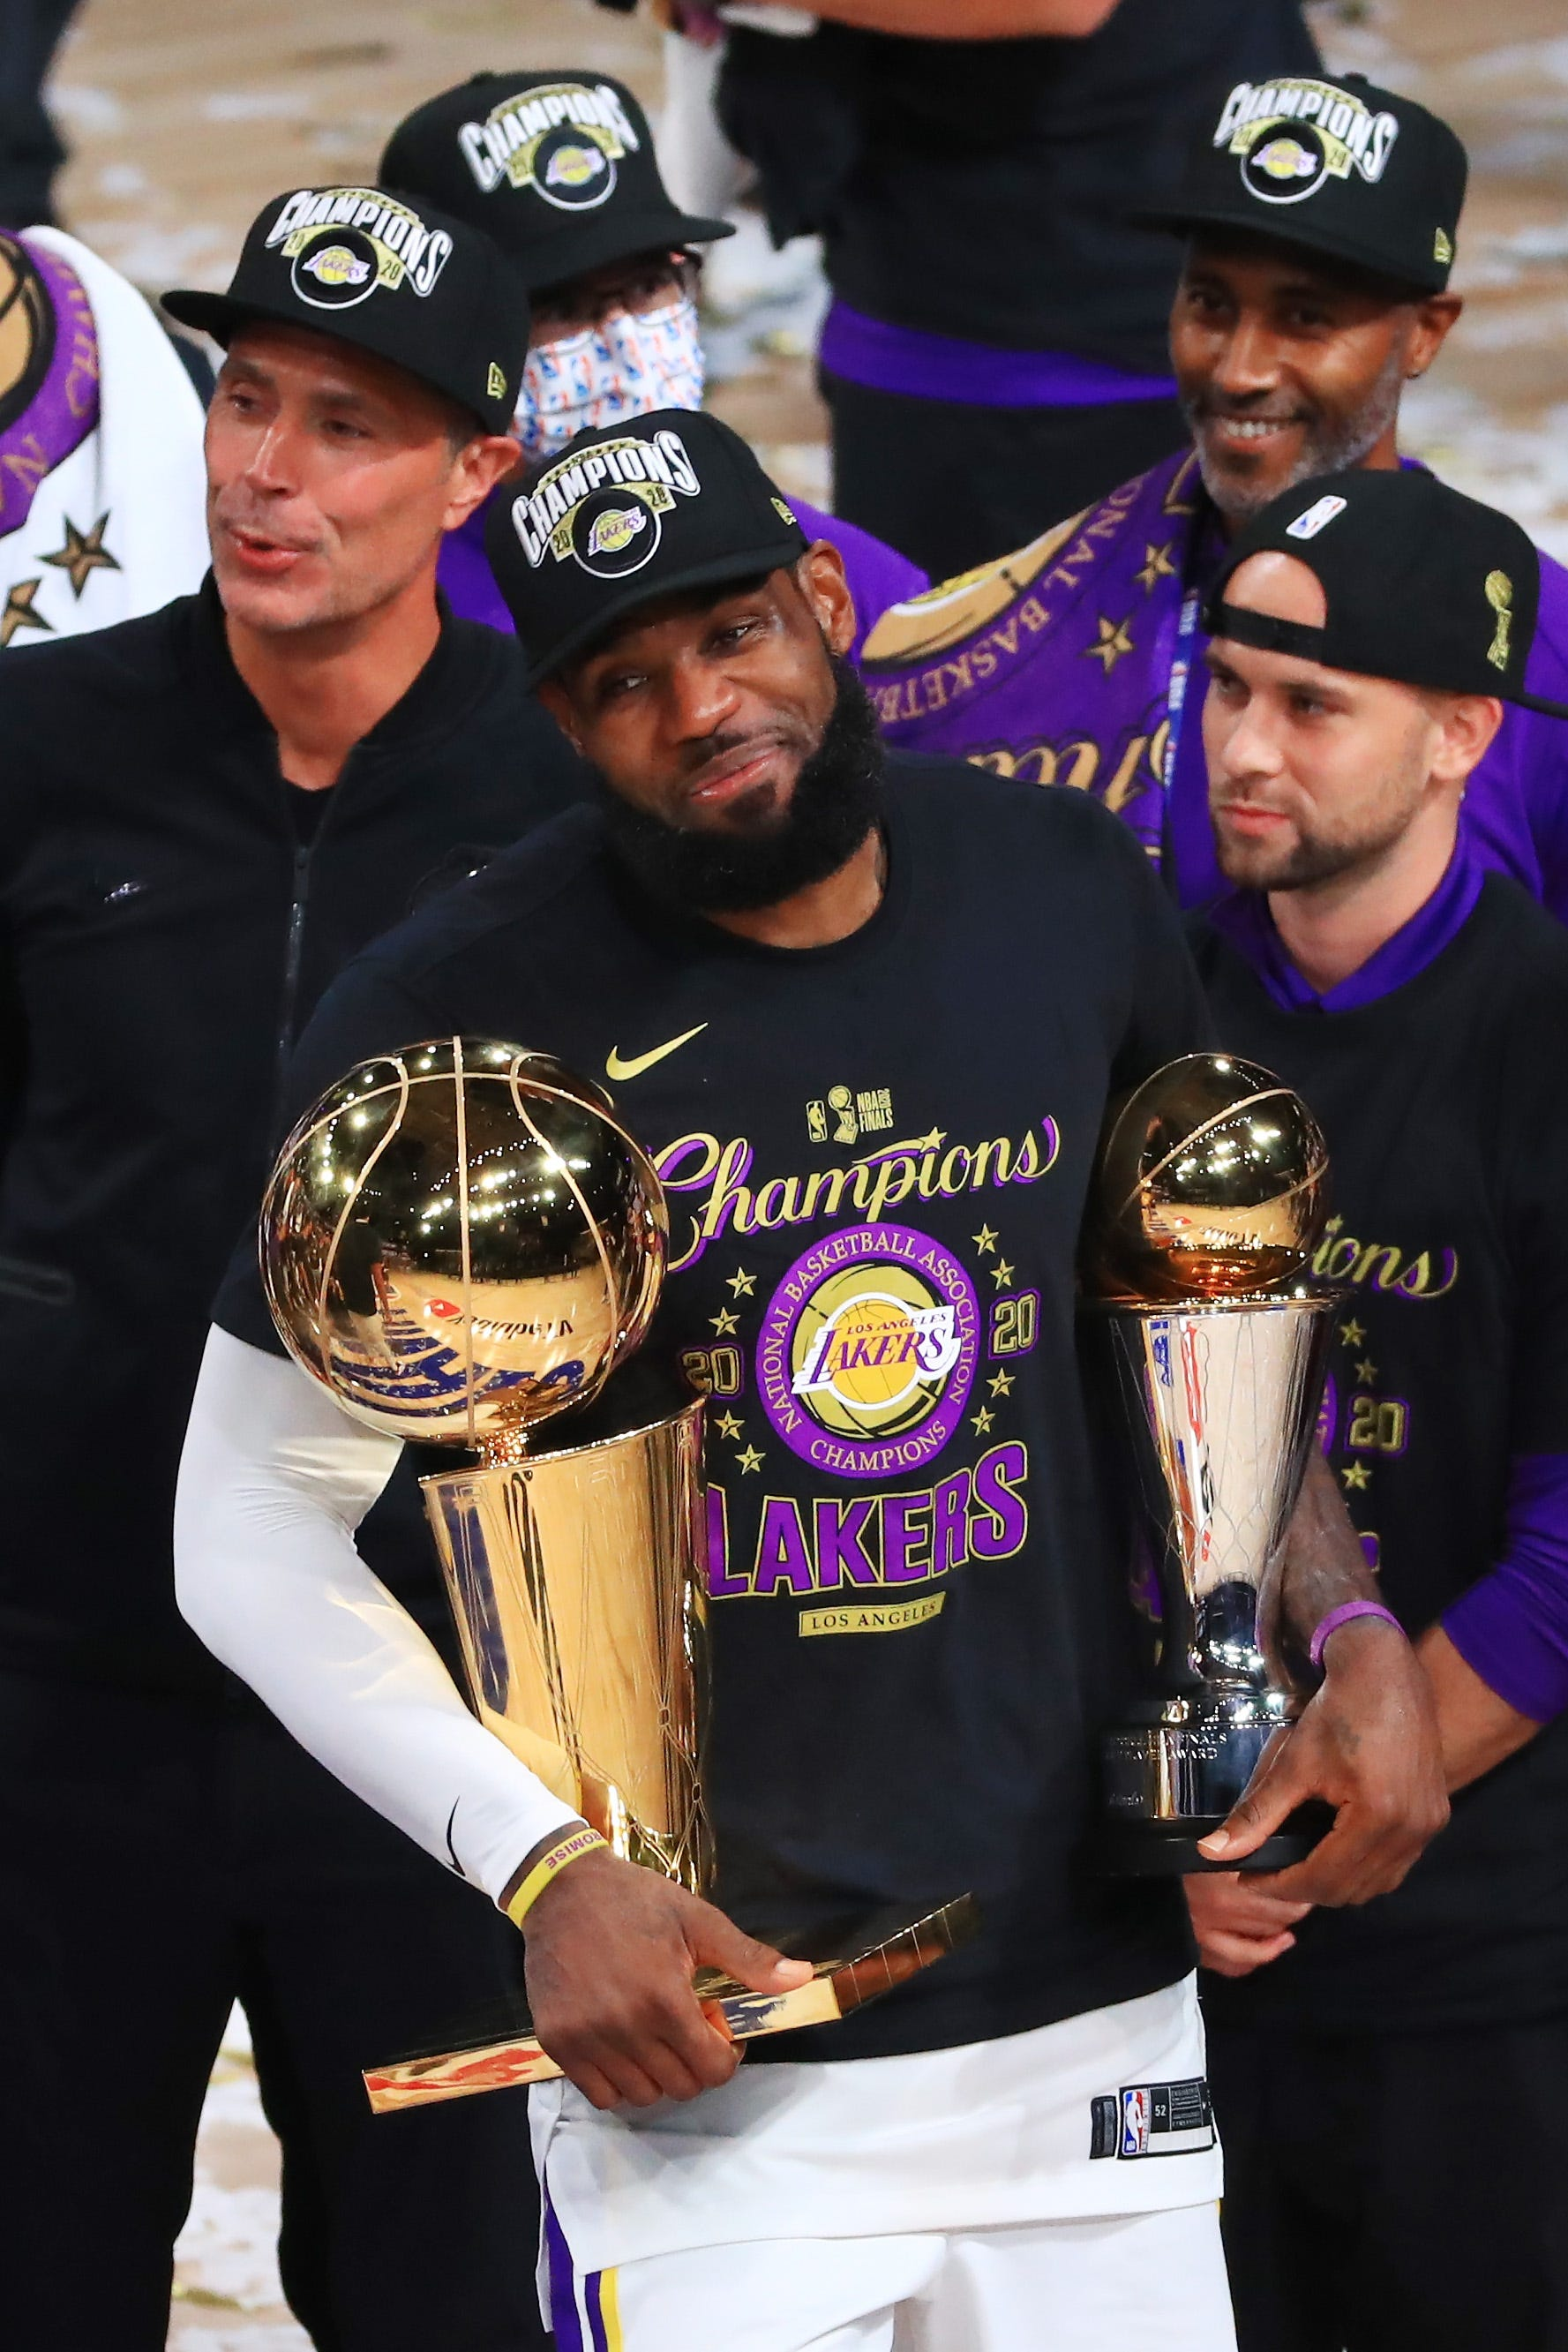 Lakers star LeBron James becomes first NBA player to win Finals MVP with three teams